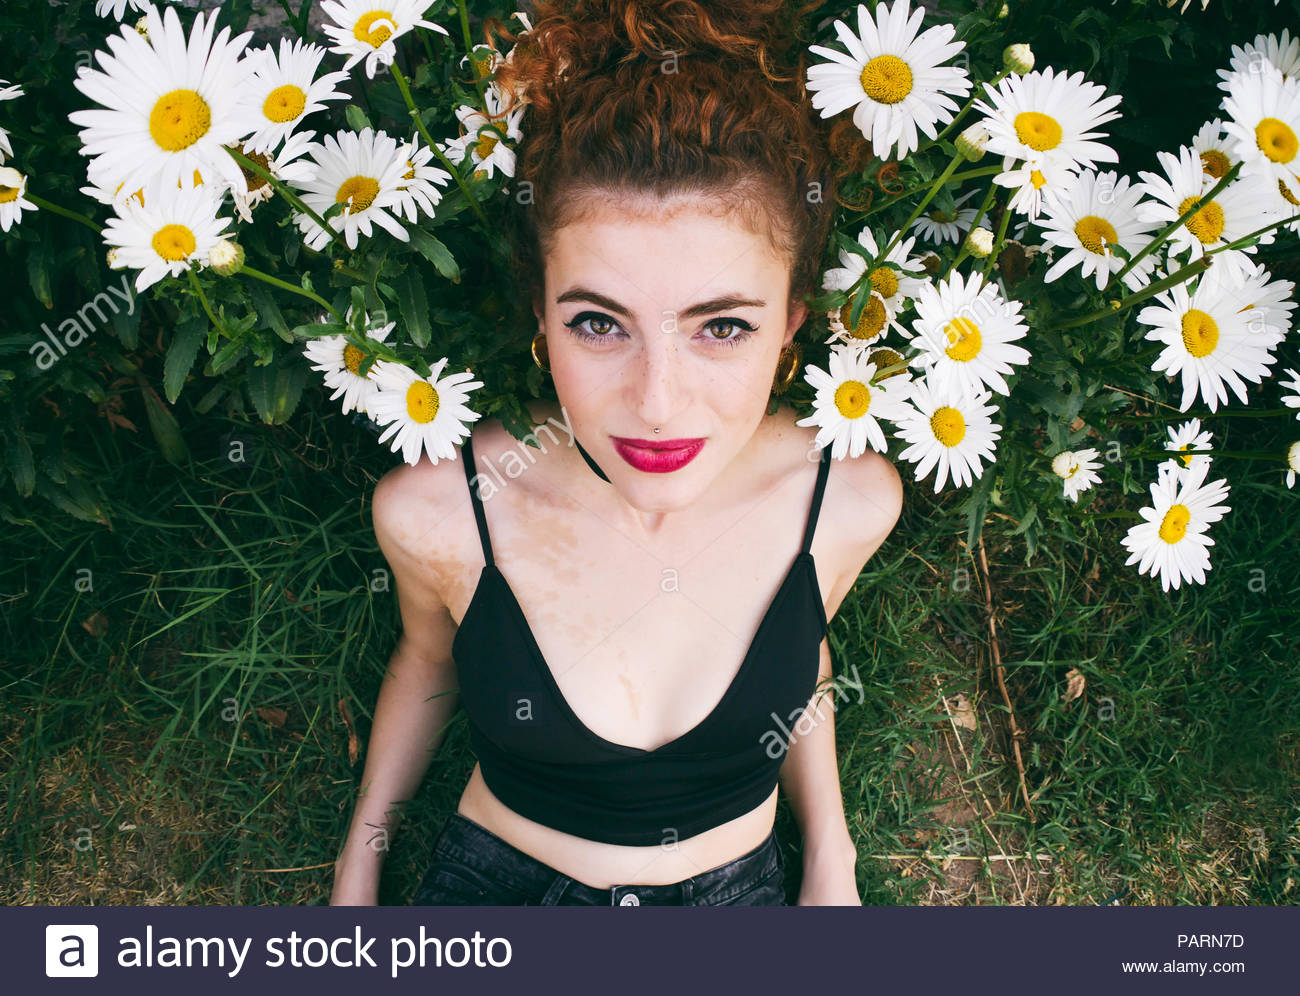 Portrait of young woman posing with daisies looking into camera - Stock Image